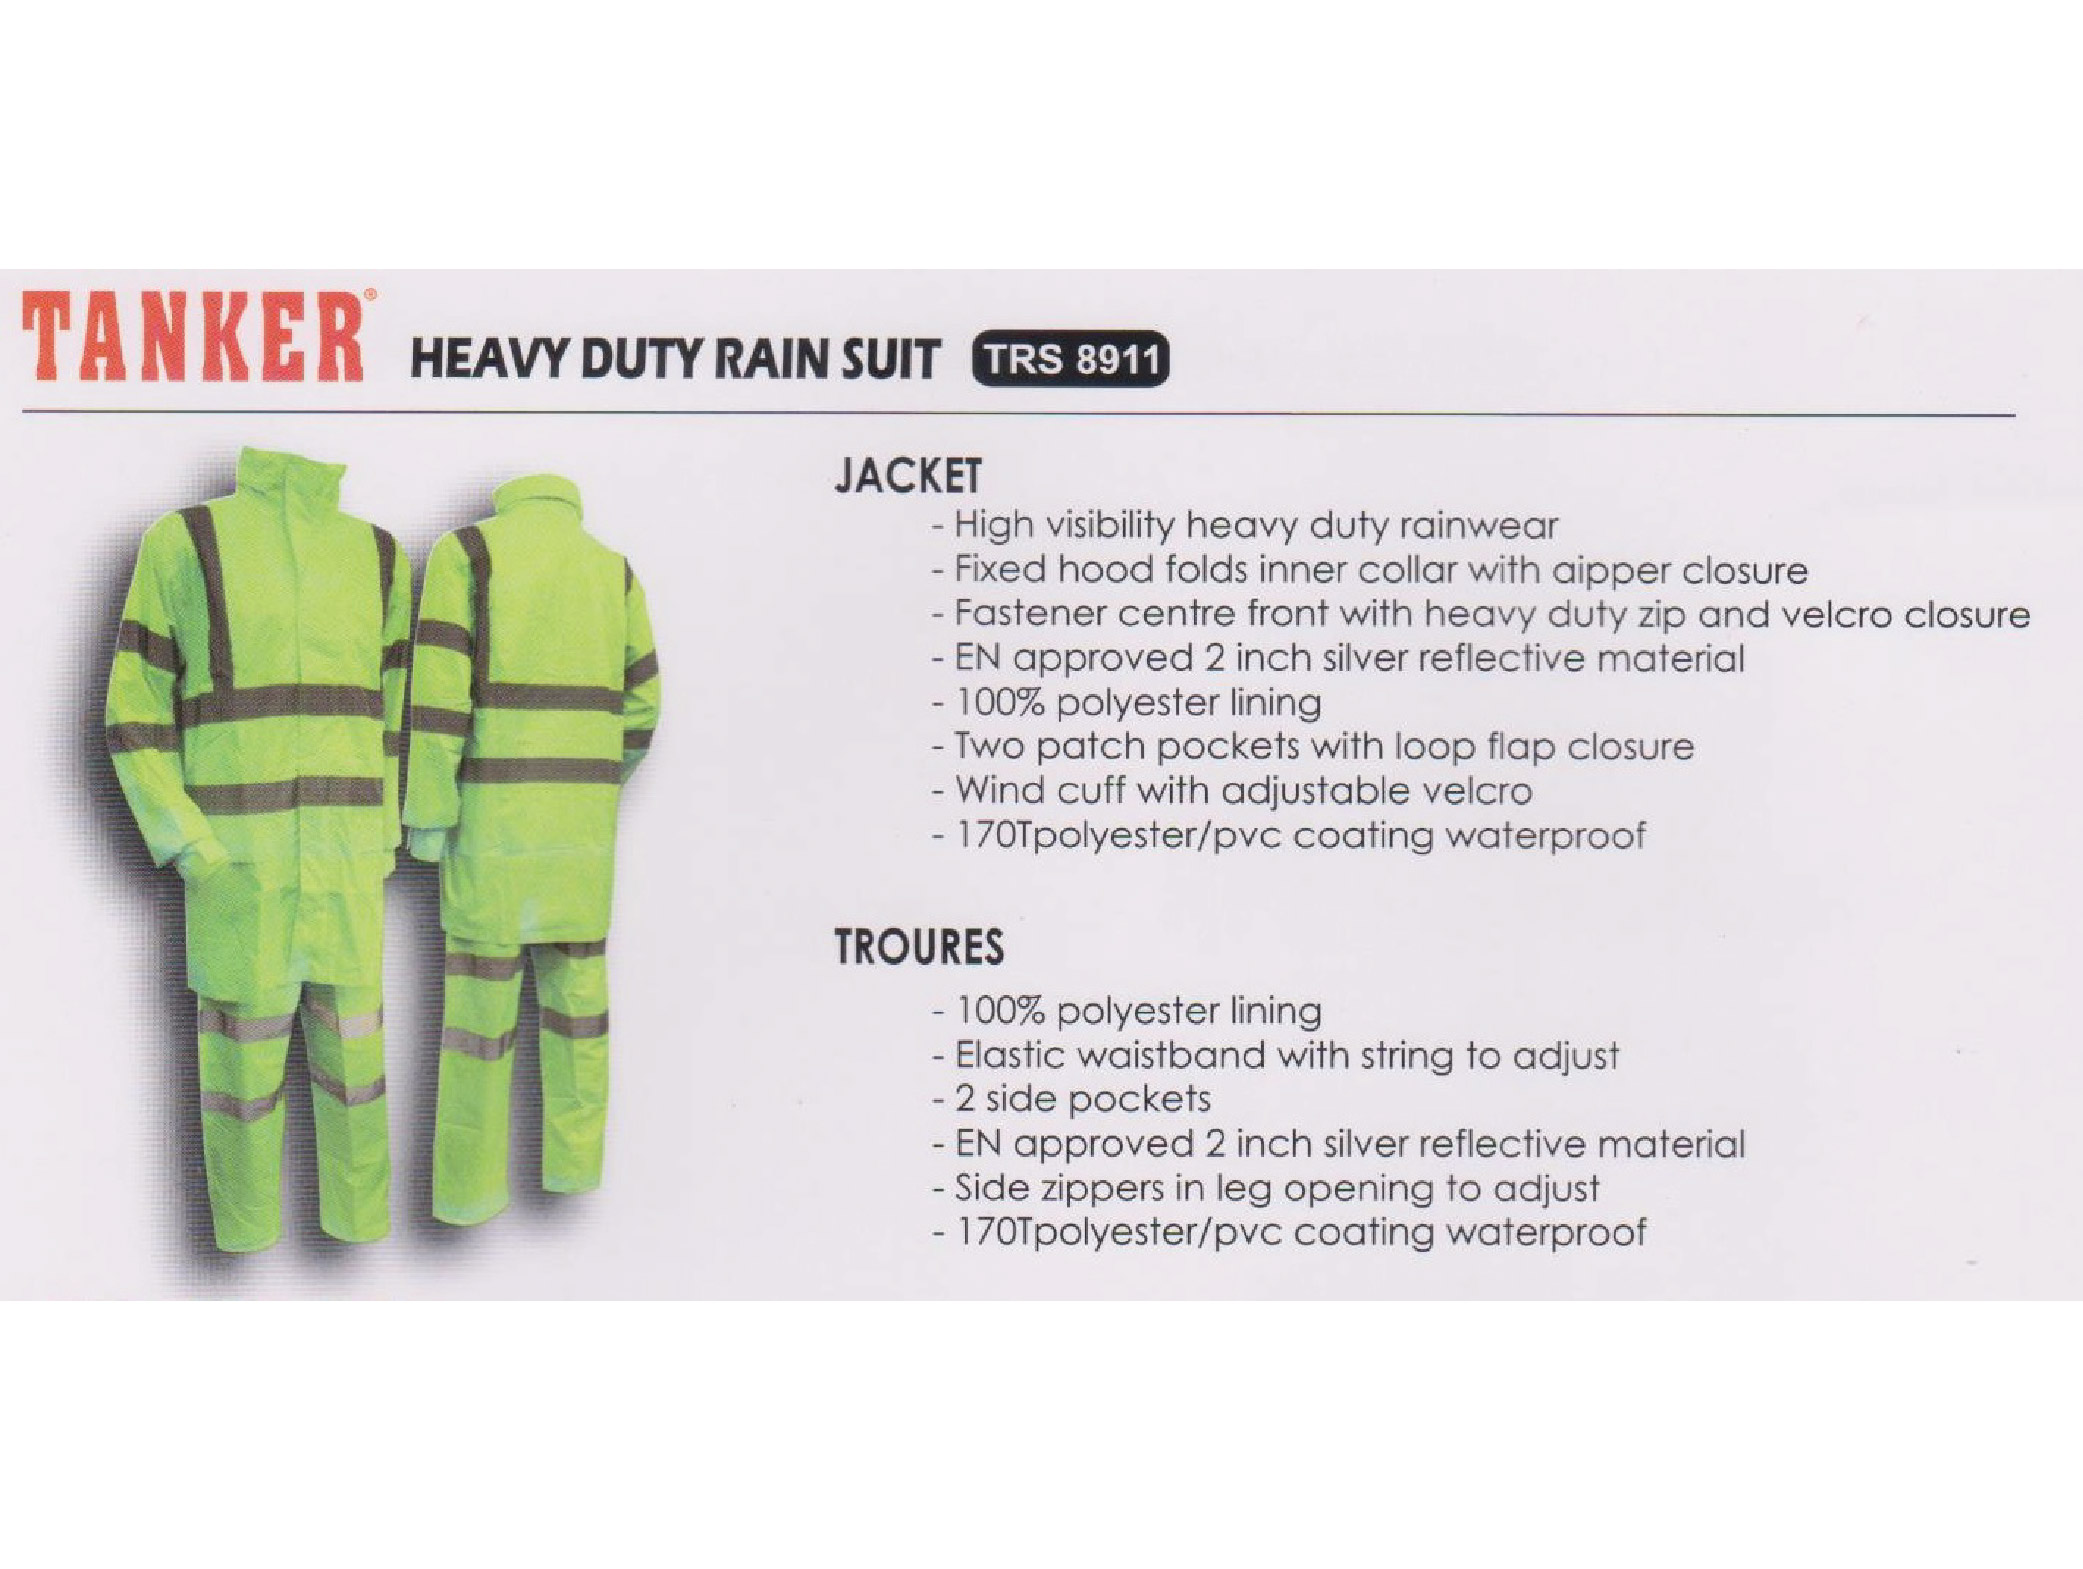 Tanker Heavy Duty Rain Suit - TRS 8911